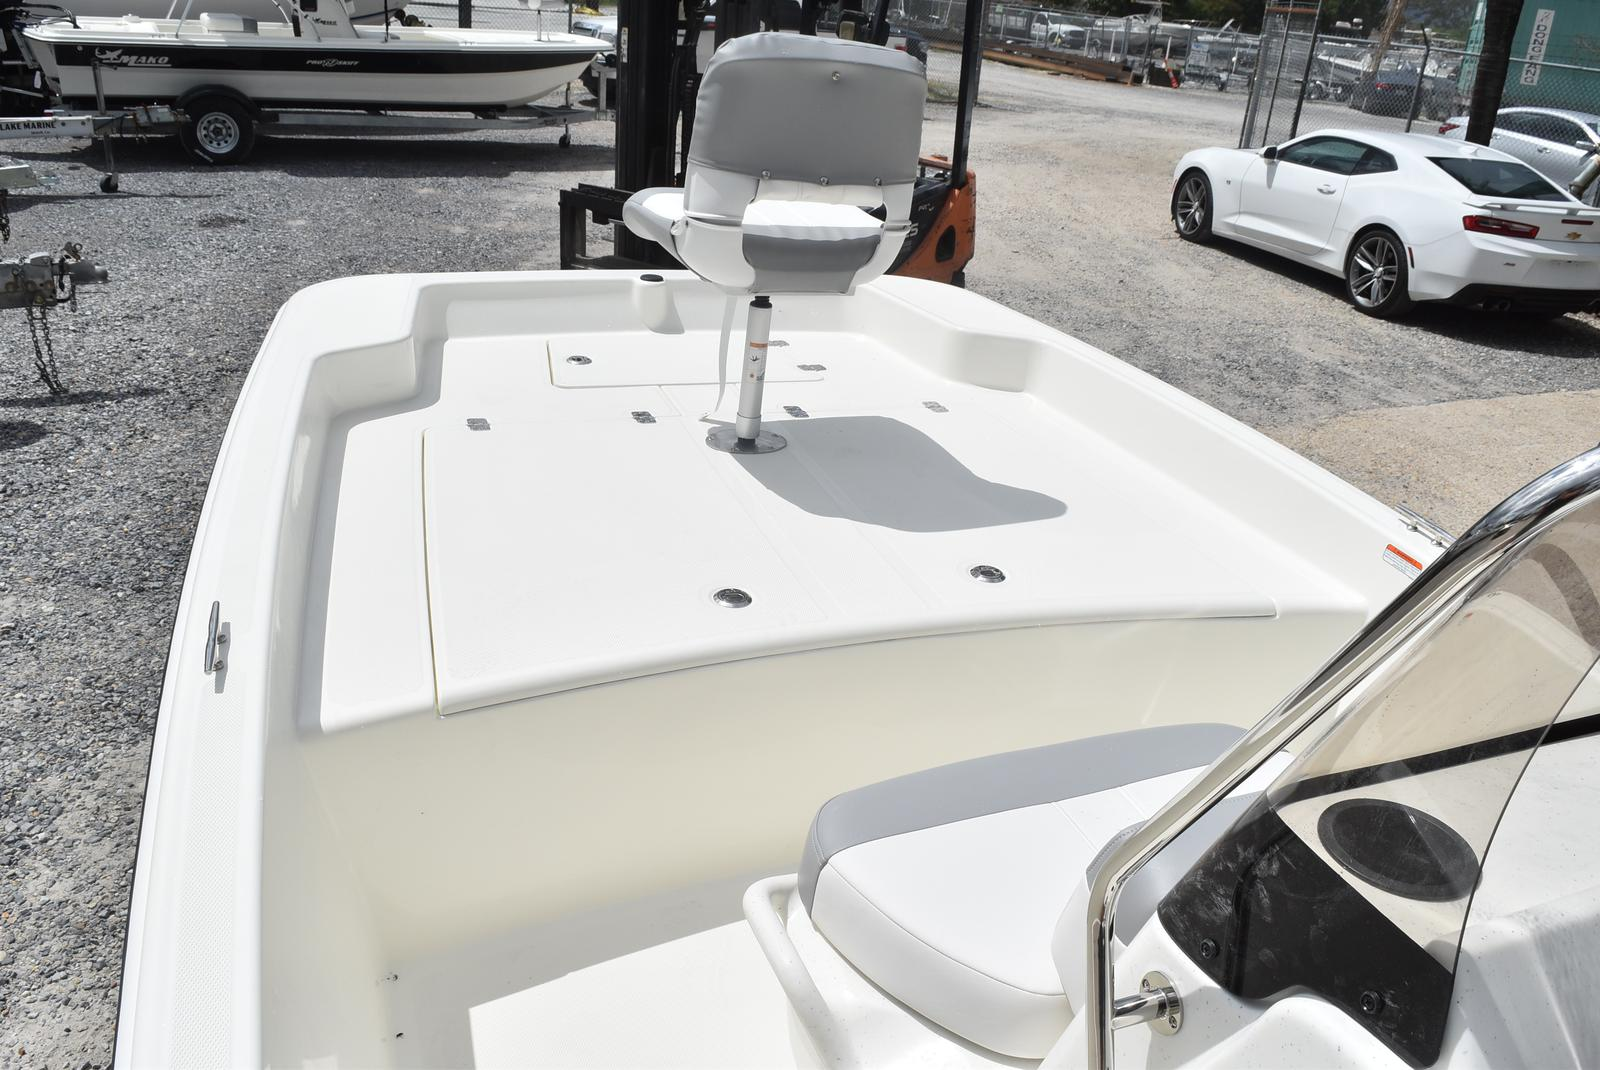 2020 Mako boat for sale, model of the boat is Pro Skiff 17, 75 ELPT & Image # 426 of 702